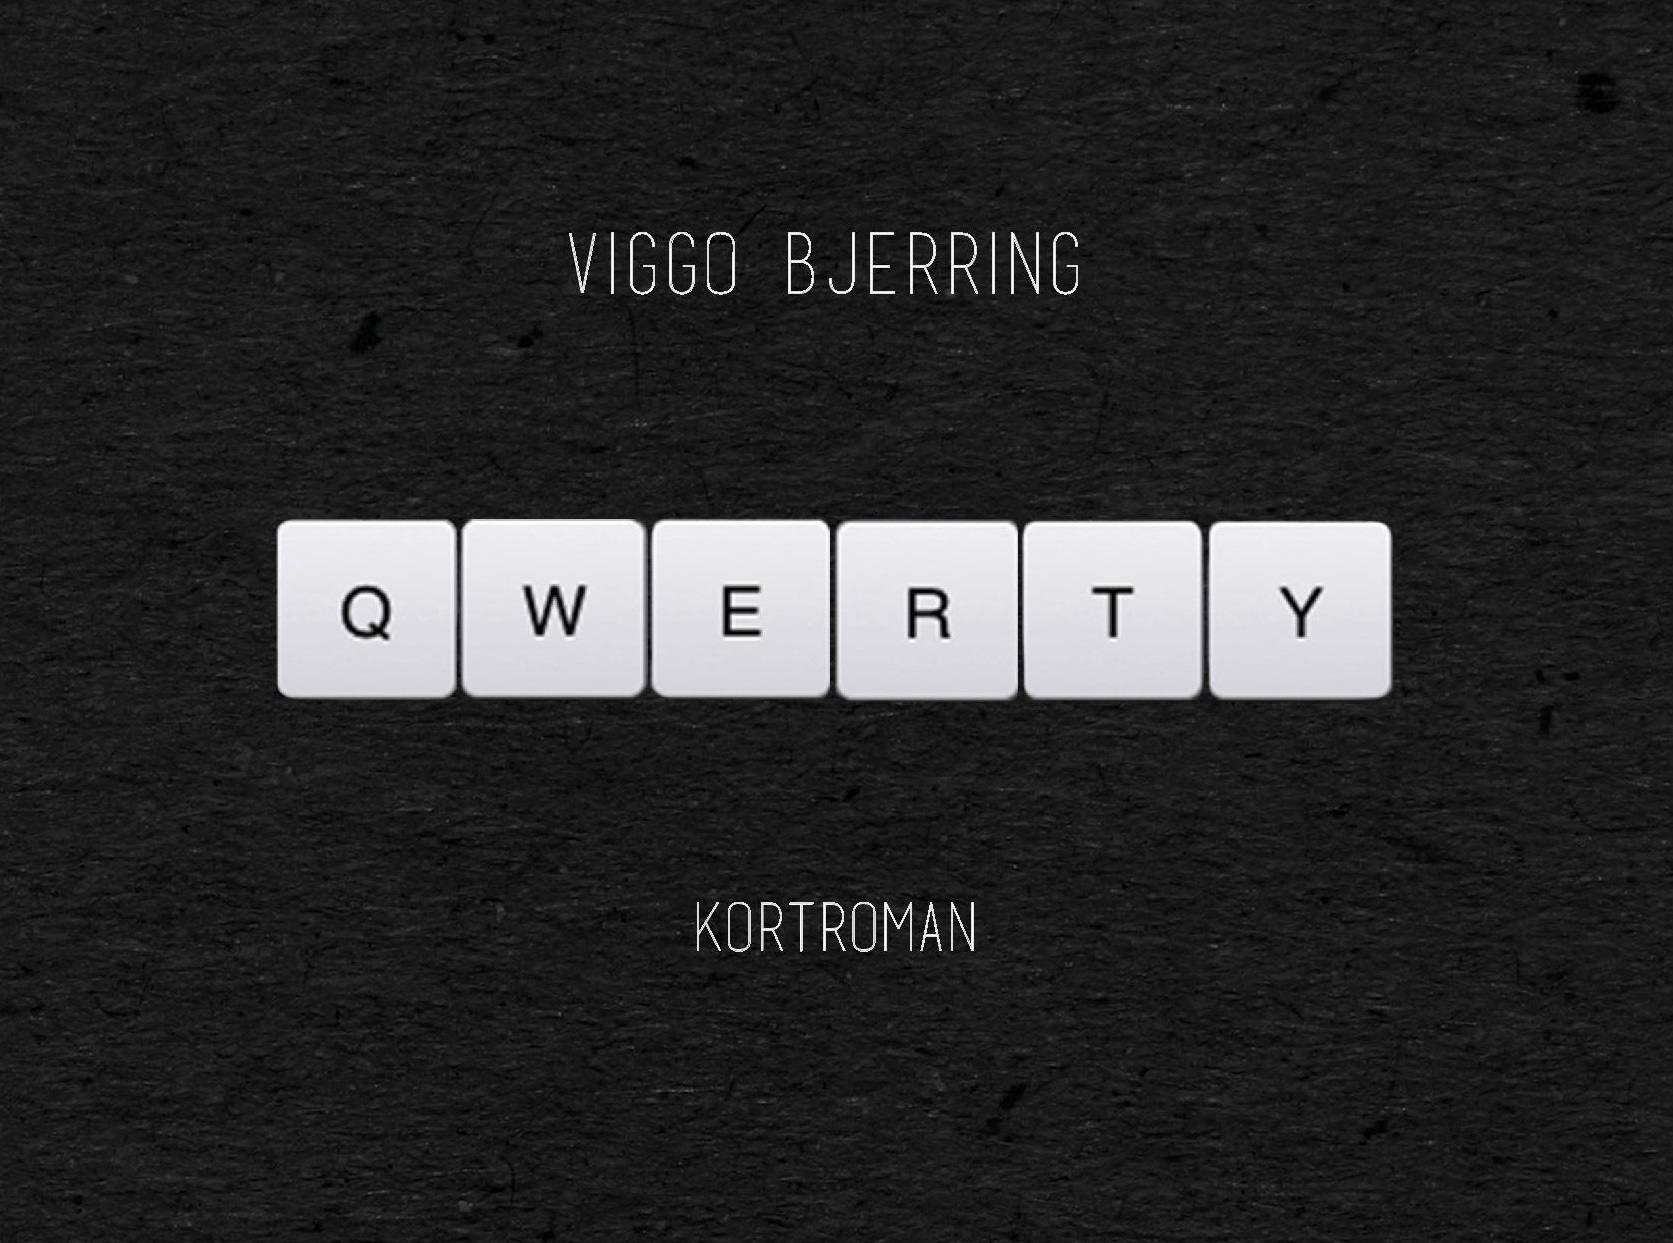 Viggo Bjerring, qwerty